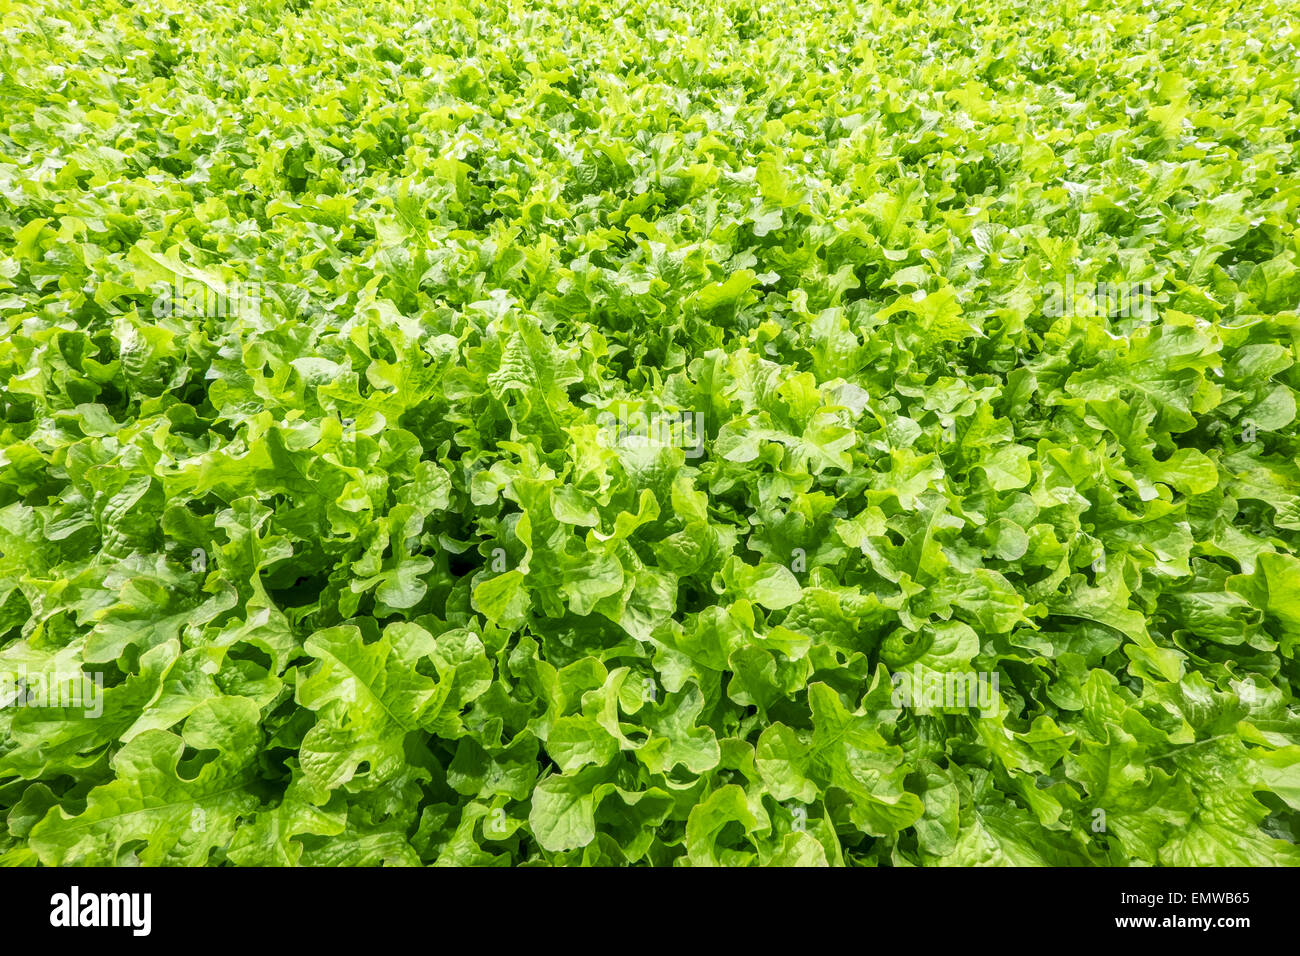 Background of freshly grown lettuce - Stock Image